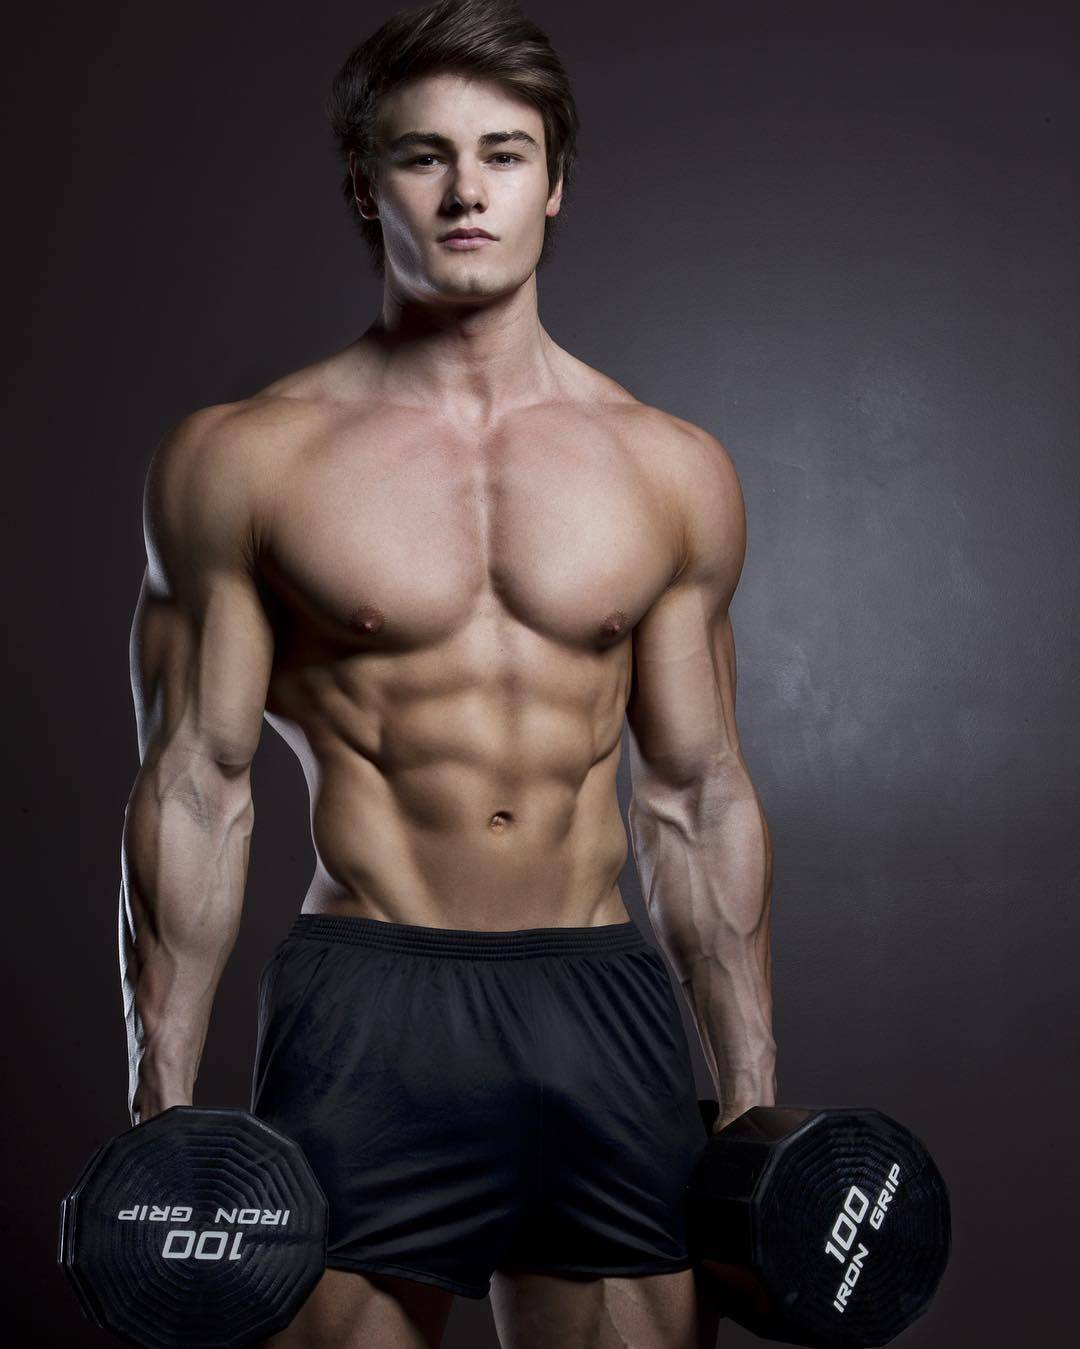 Jeff seid - greatest physiques